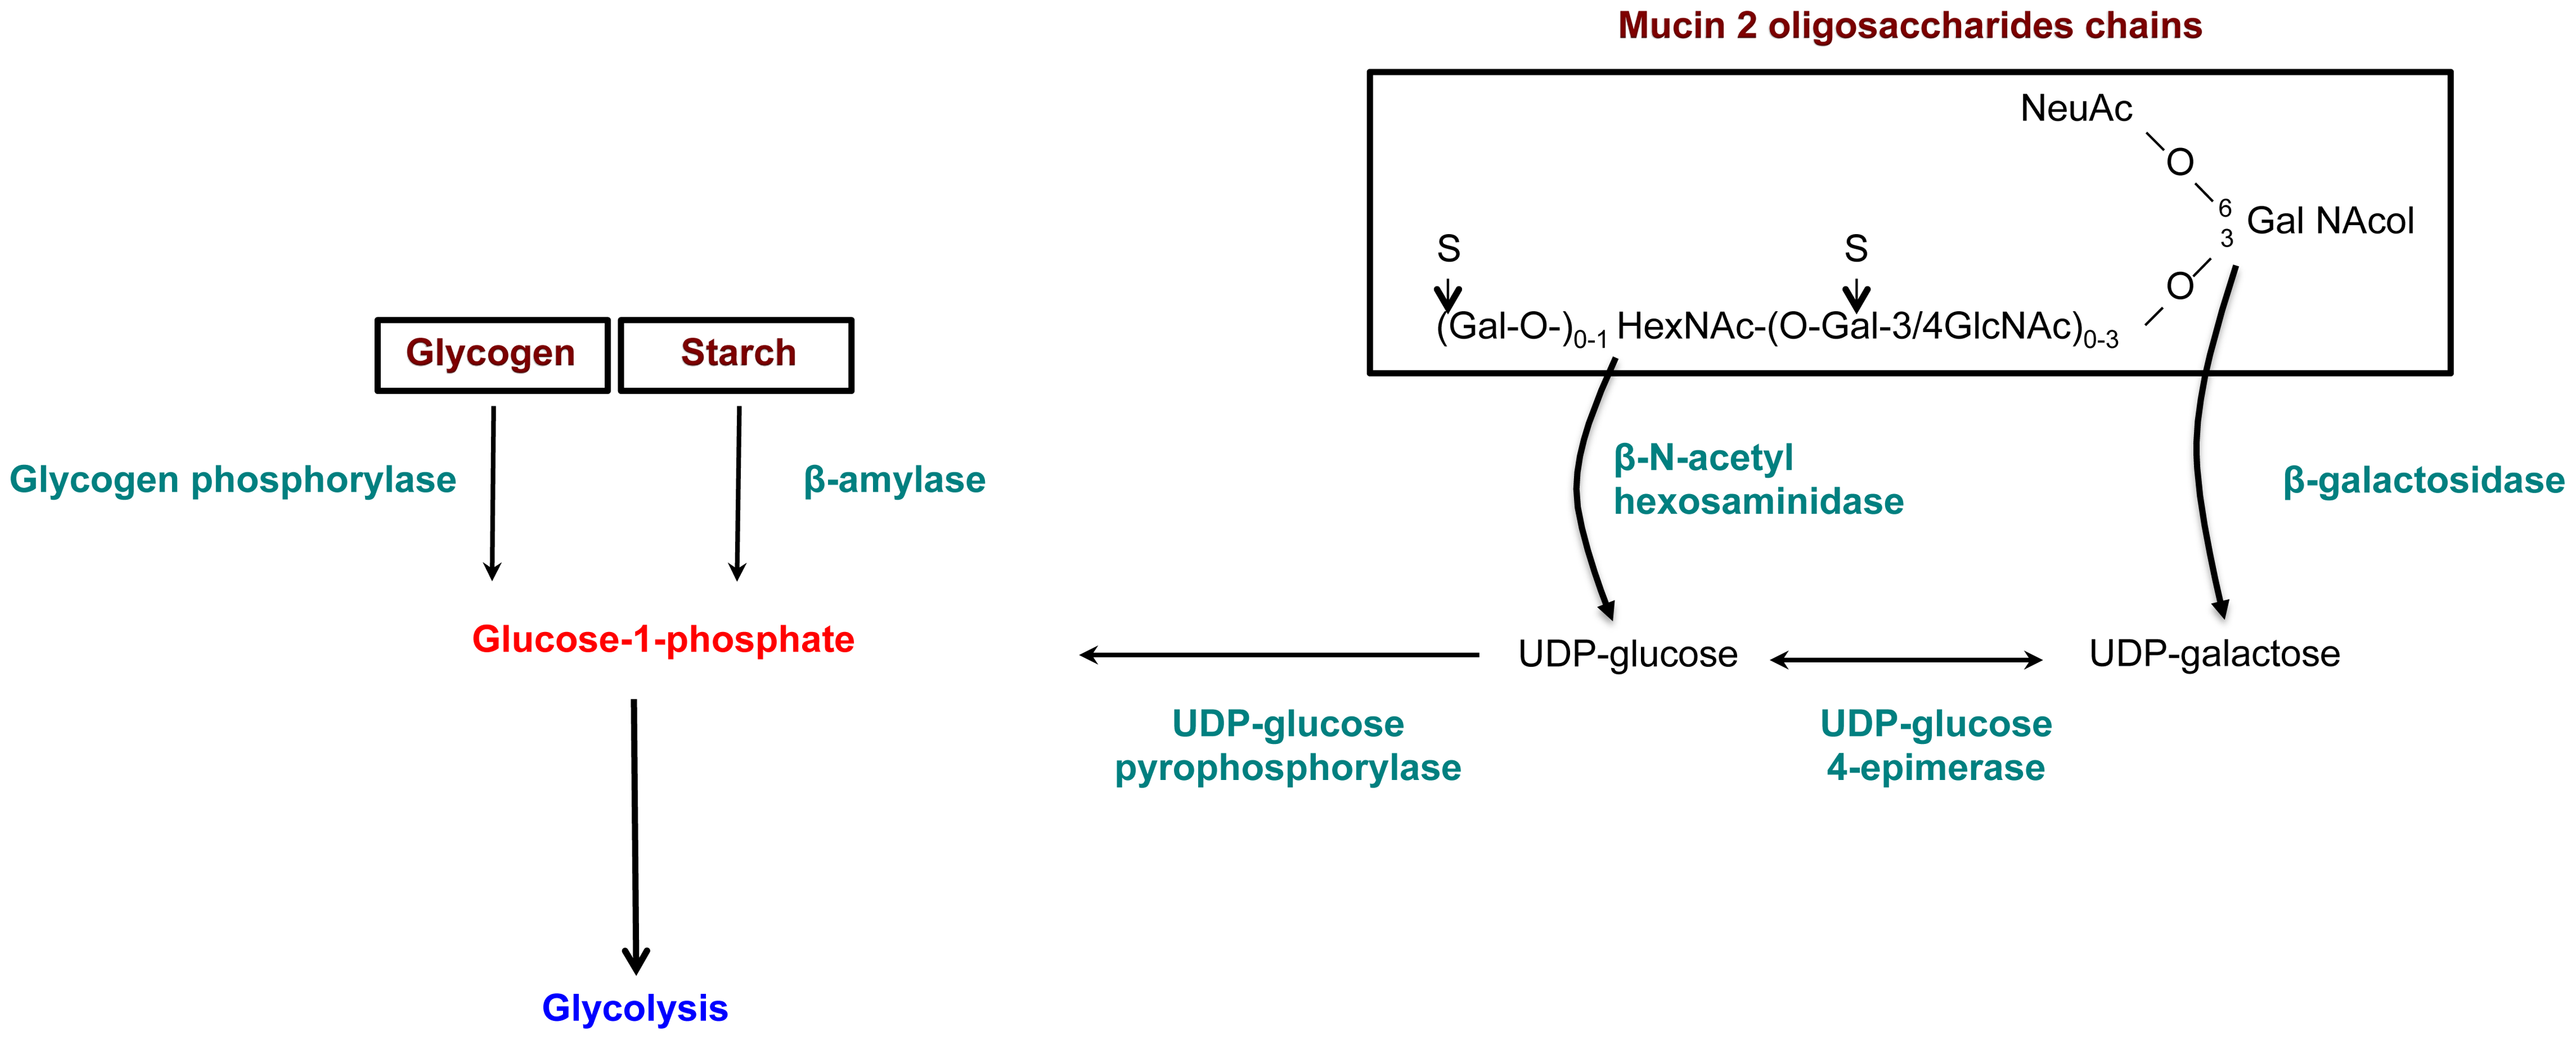 Enzymes overexpressed and involved in carbohydrate metabolism specific to the virulent HM1:IMSS strain.